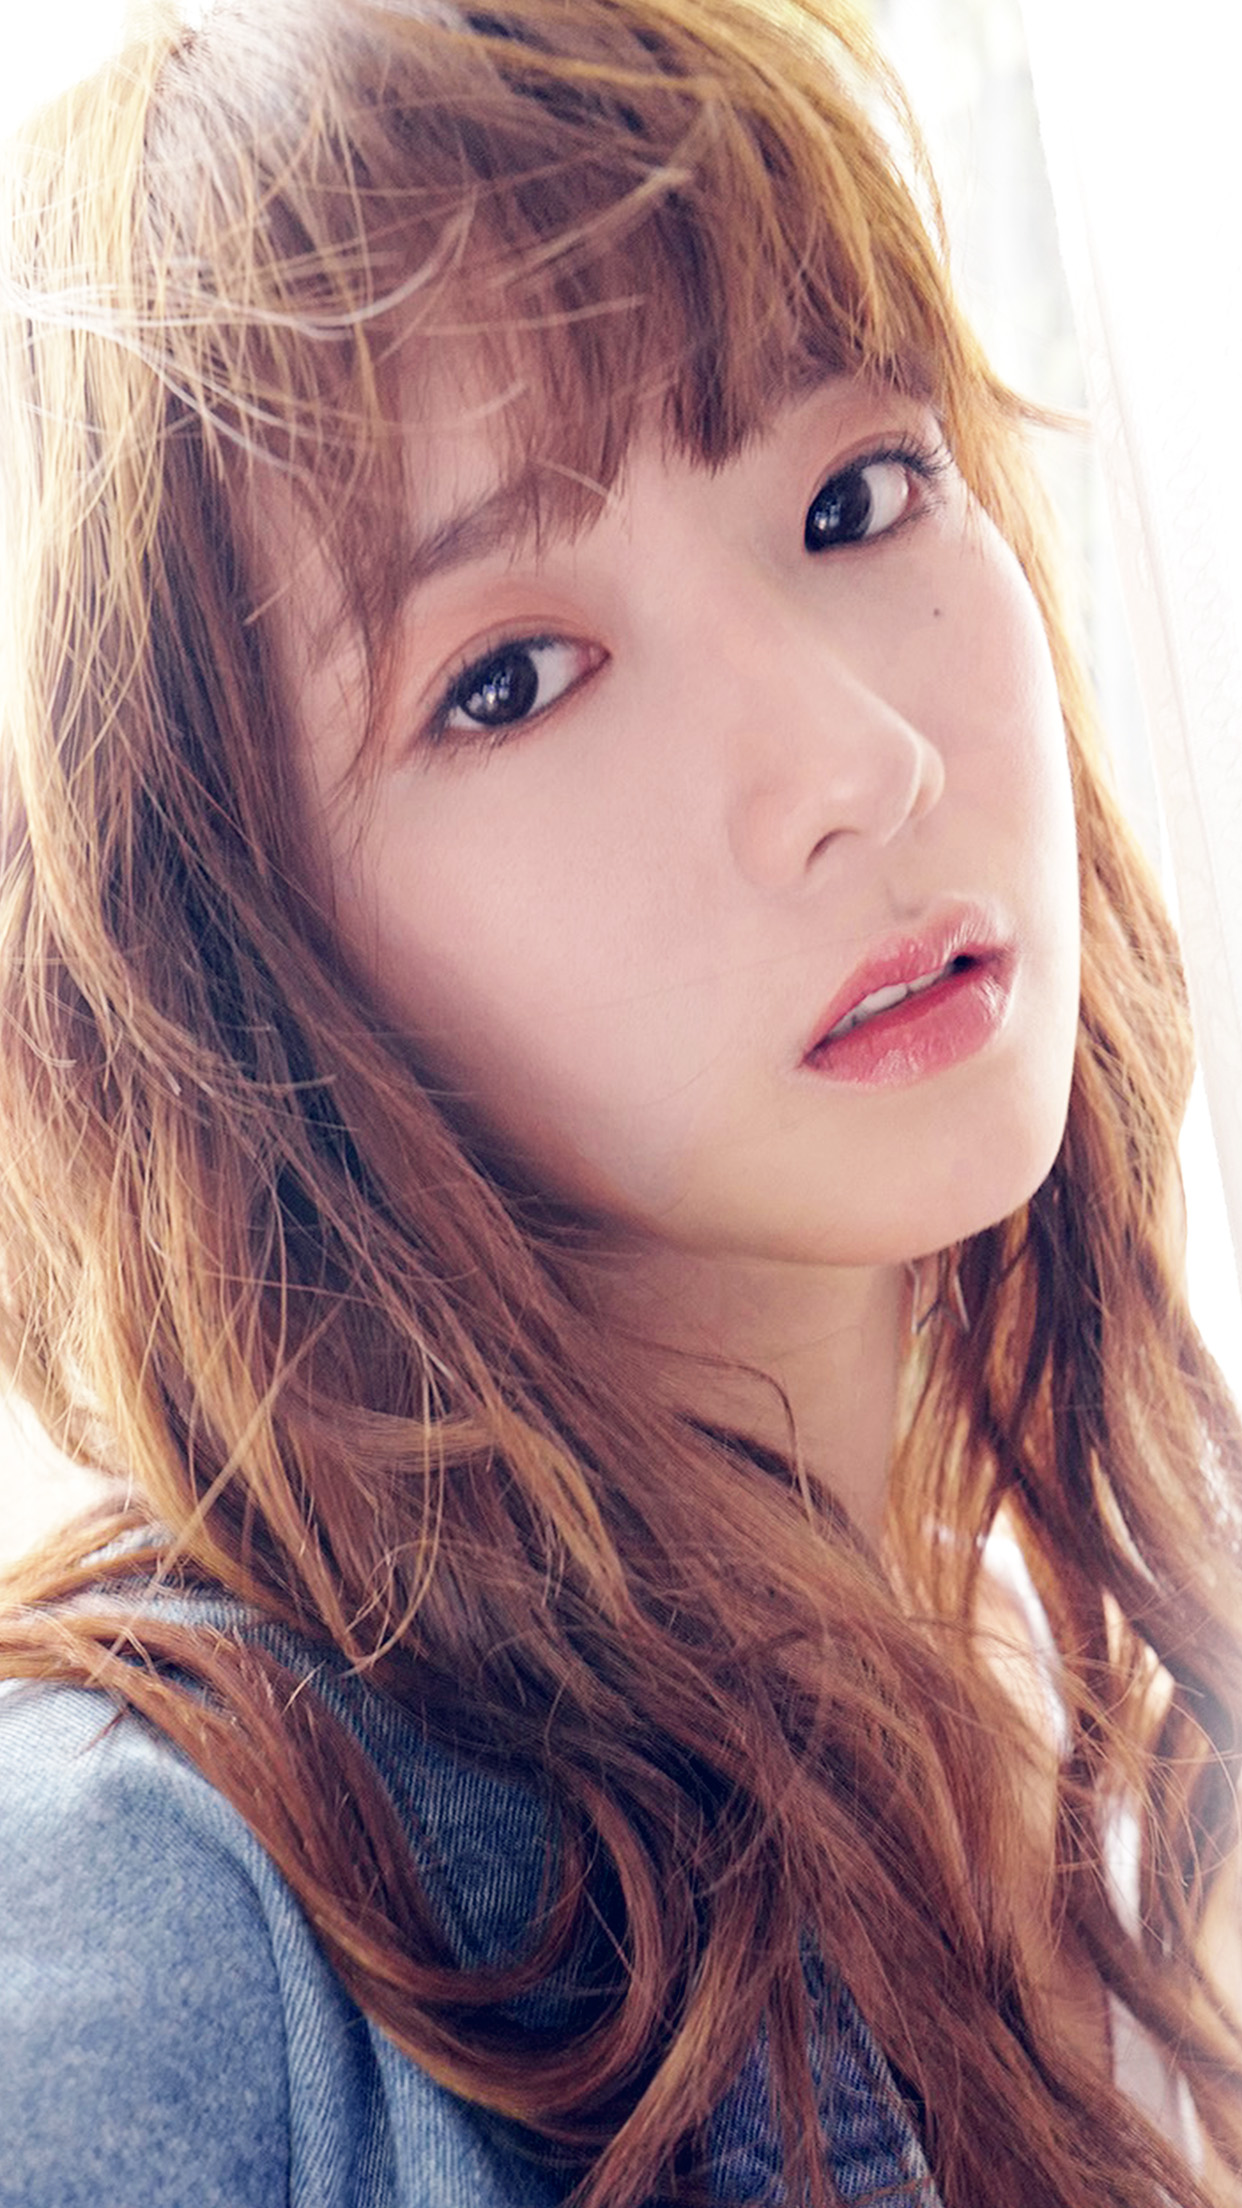 papers.co hl47 girl cute kpop celebrity 34 iphone6 plus wallpaper